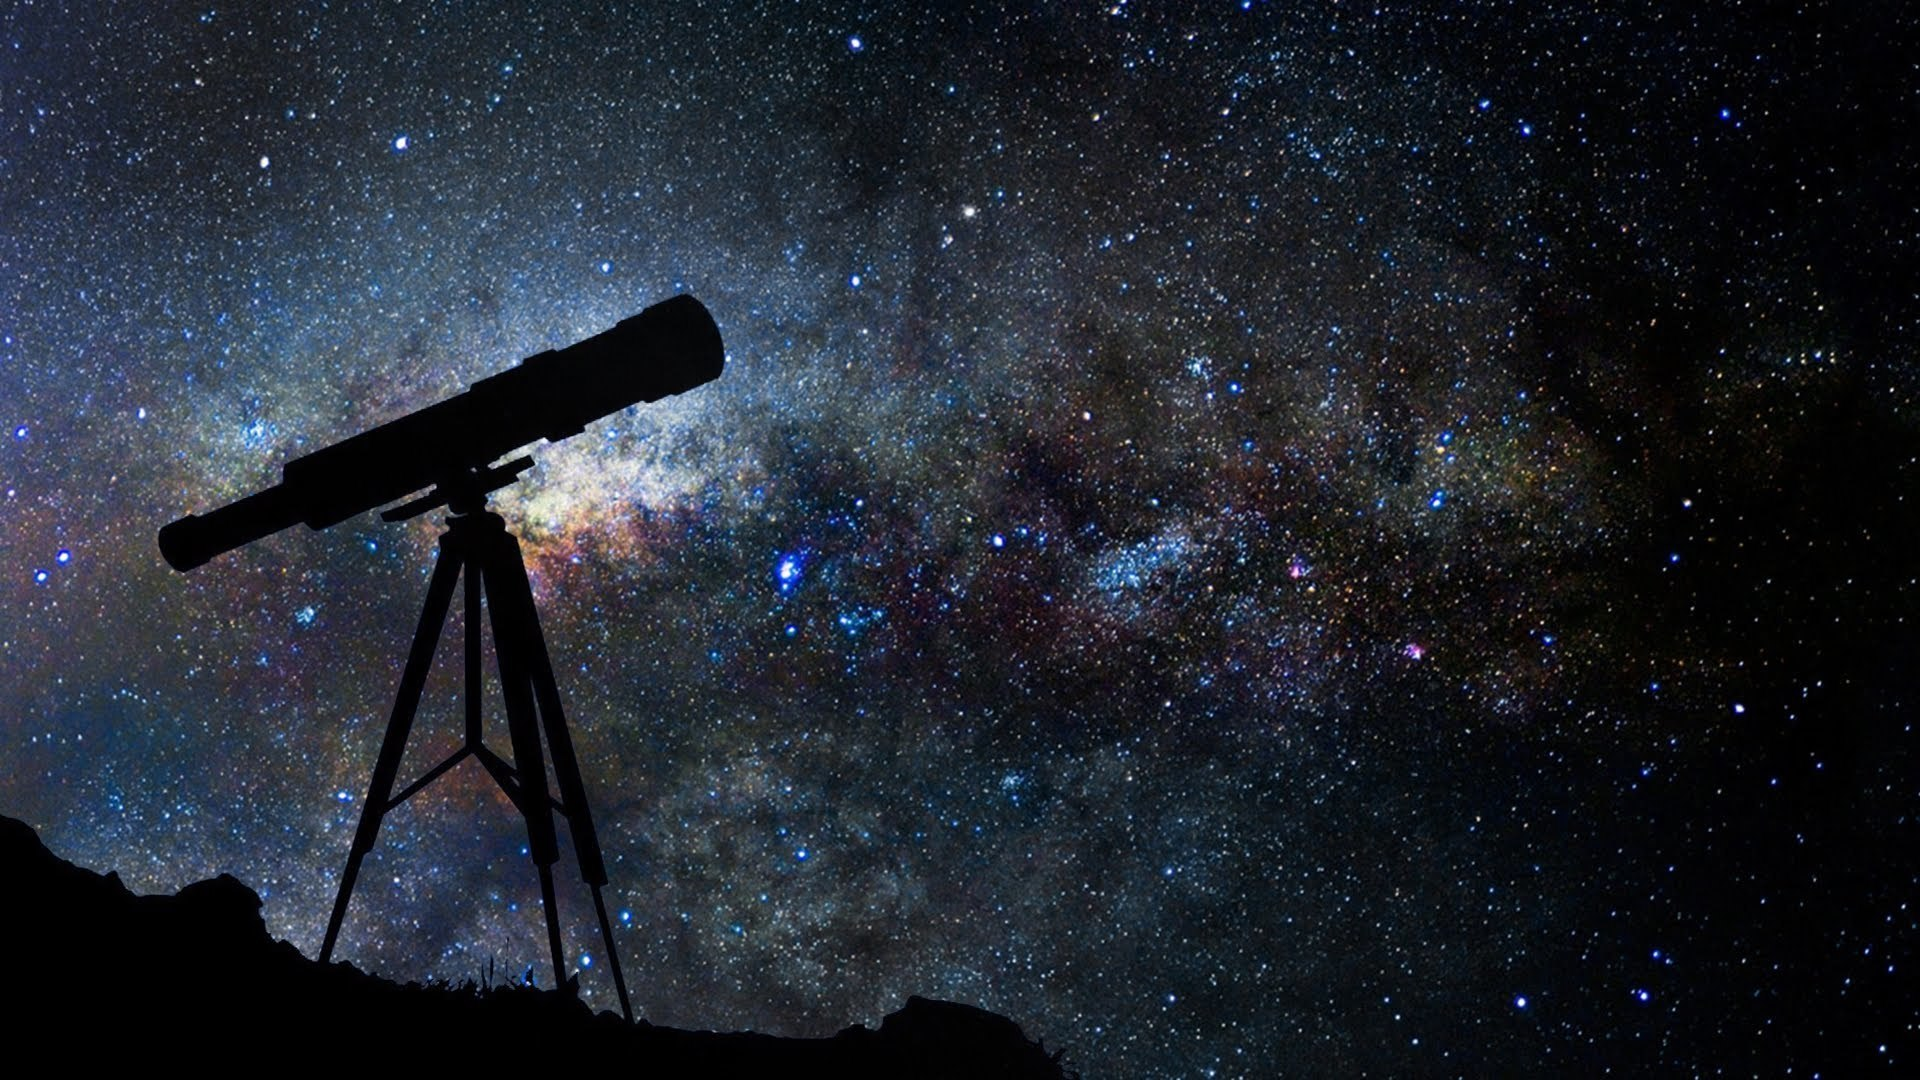 Astronomical Events December 2020.The Most Important Astronomical Events Until 2020 Absolute